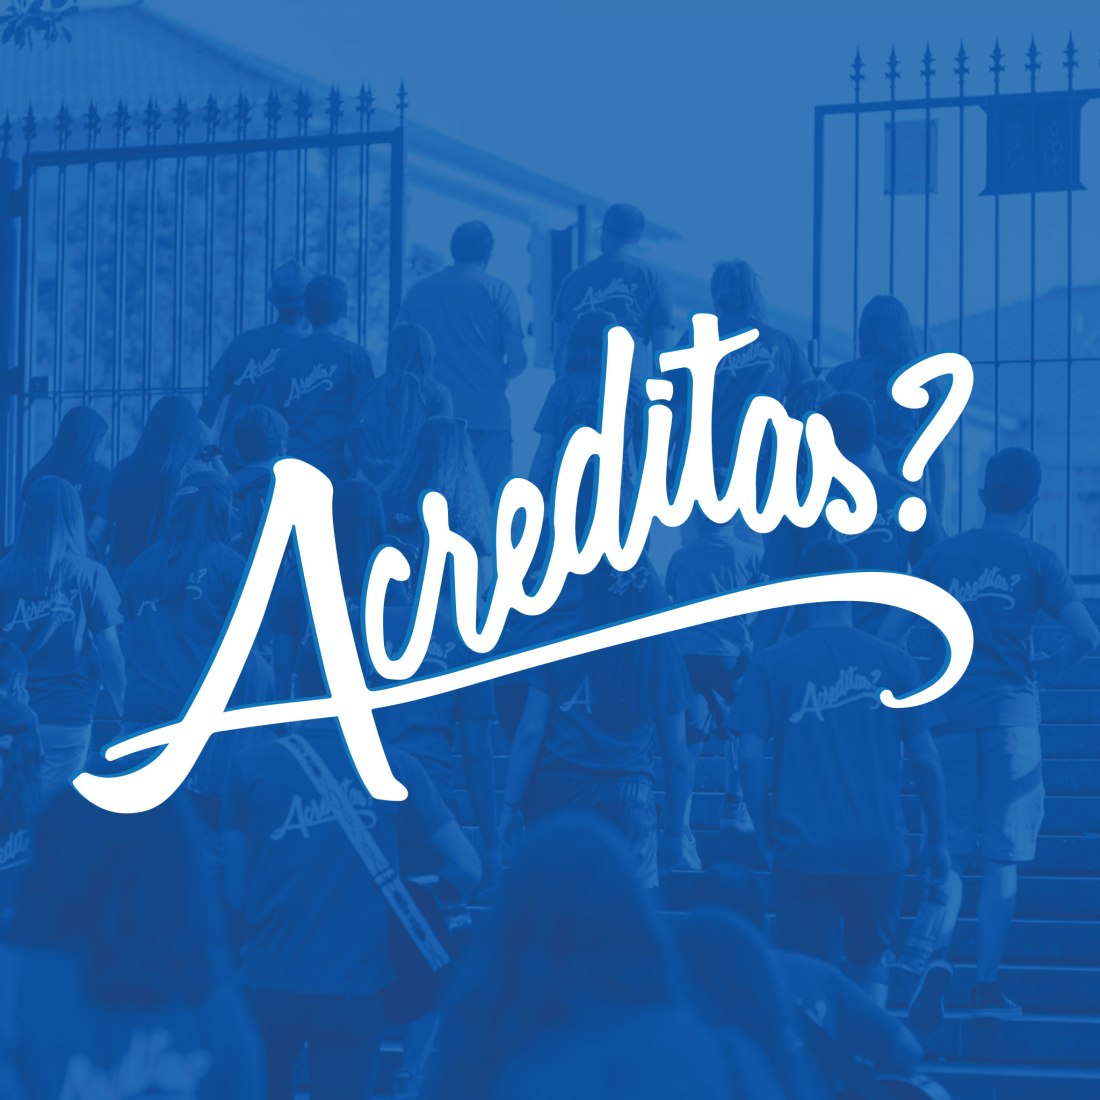 01-Acreditas-Blue